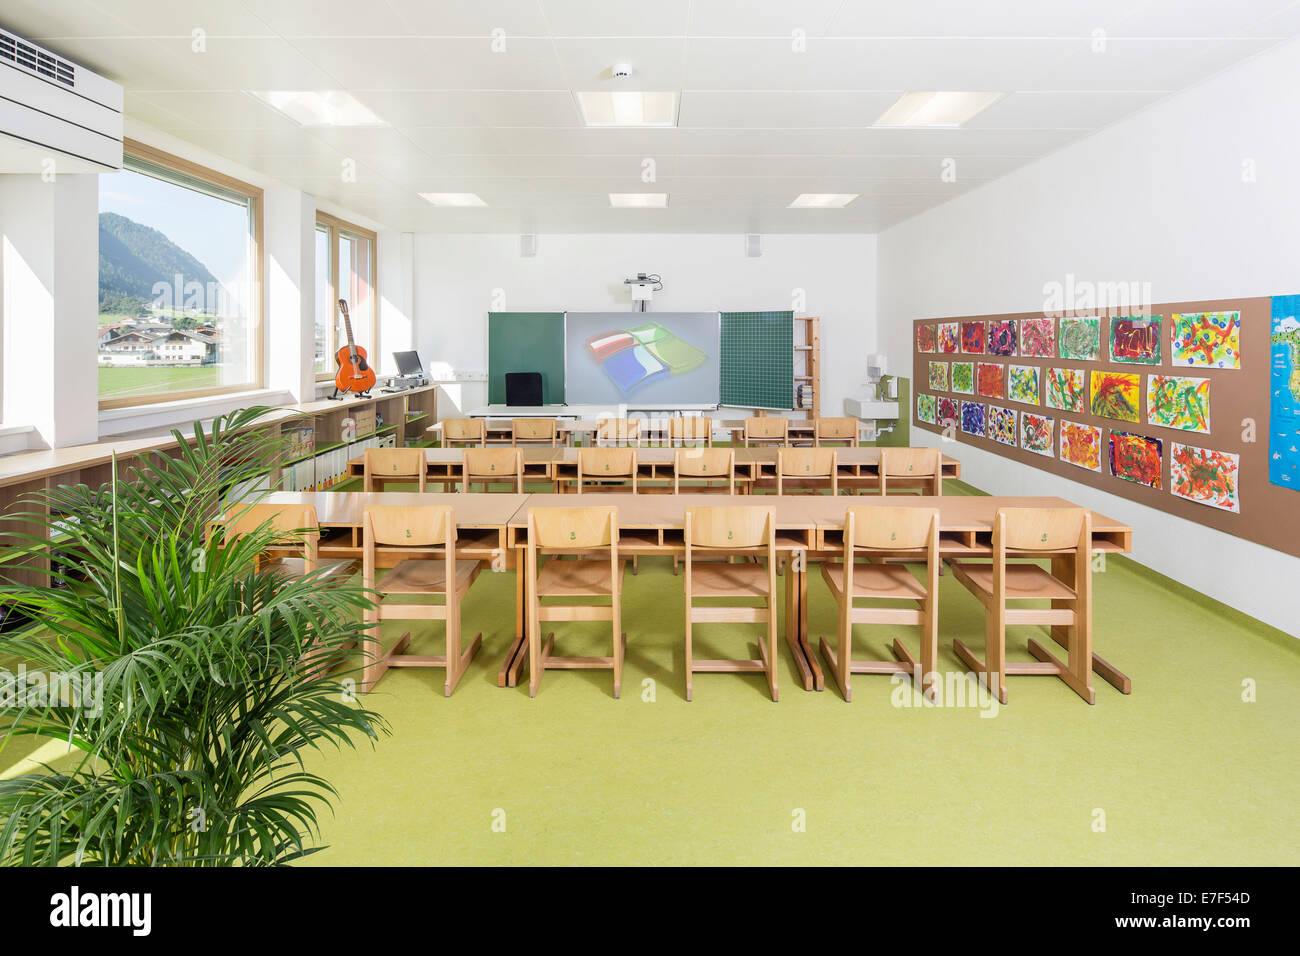 Classroom at a primary school, Reith im Alpbachtal, Tyrol, Austria - Stock Image